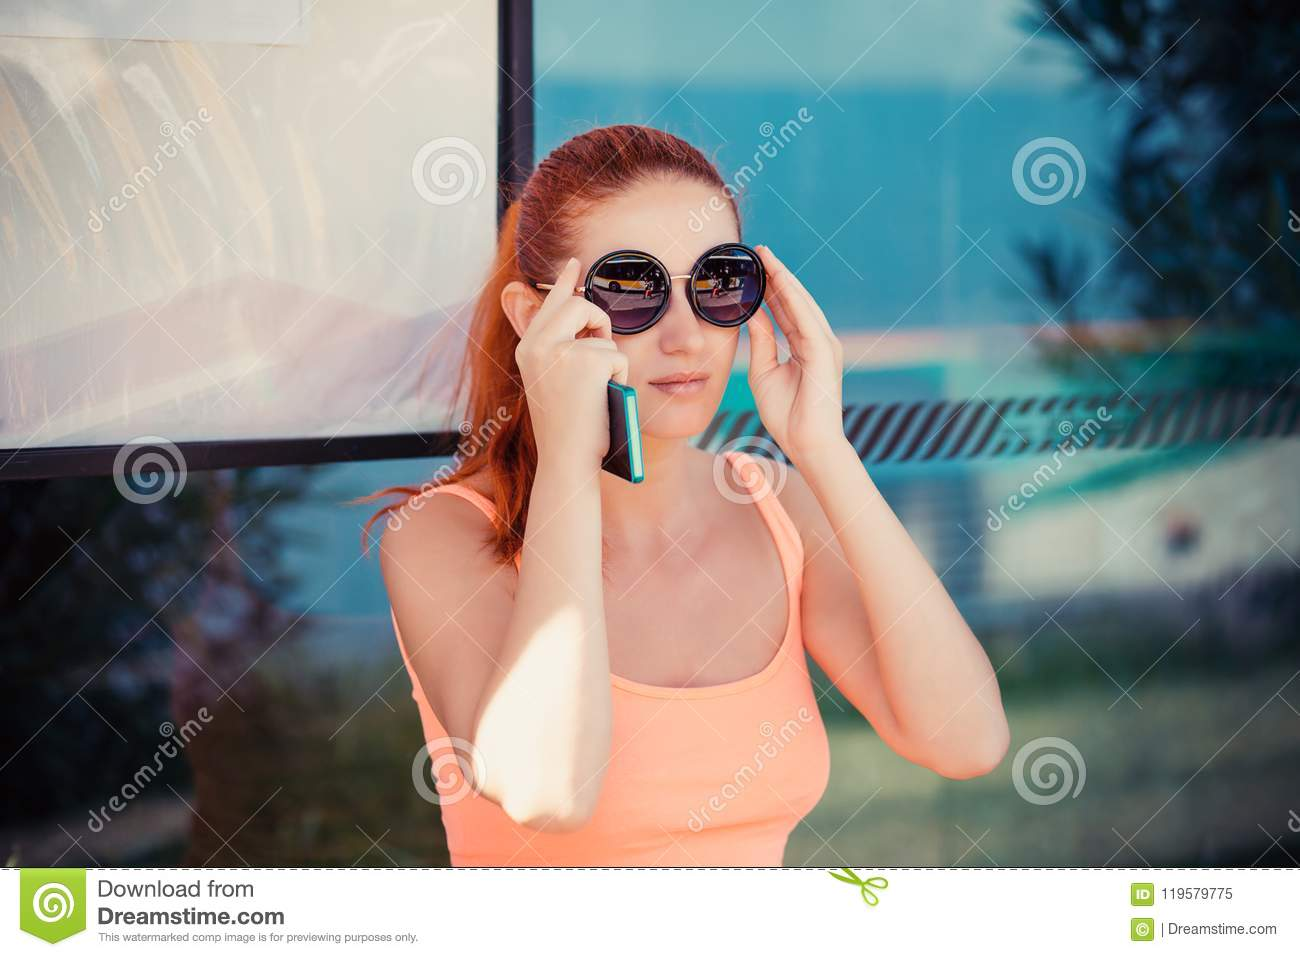 Woman female girl sitting in a bus station adjusting round sunglasses